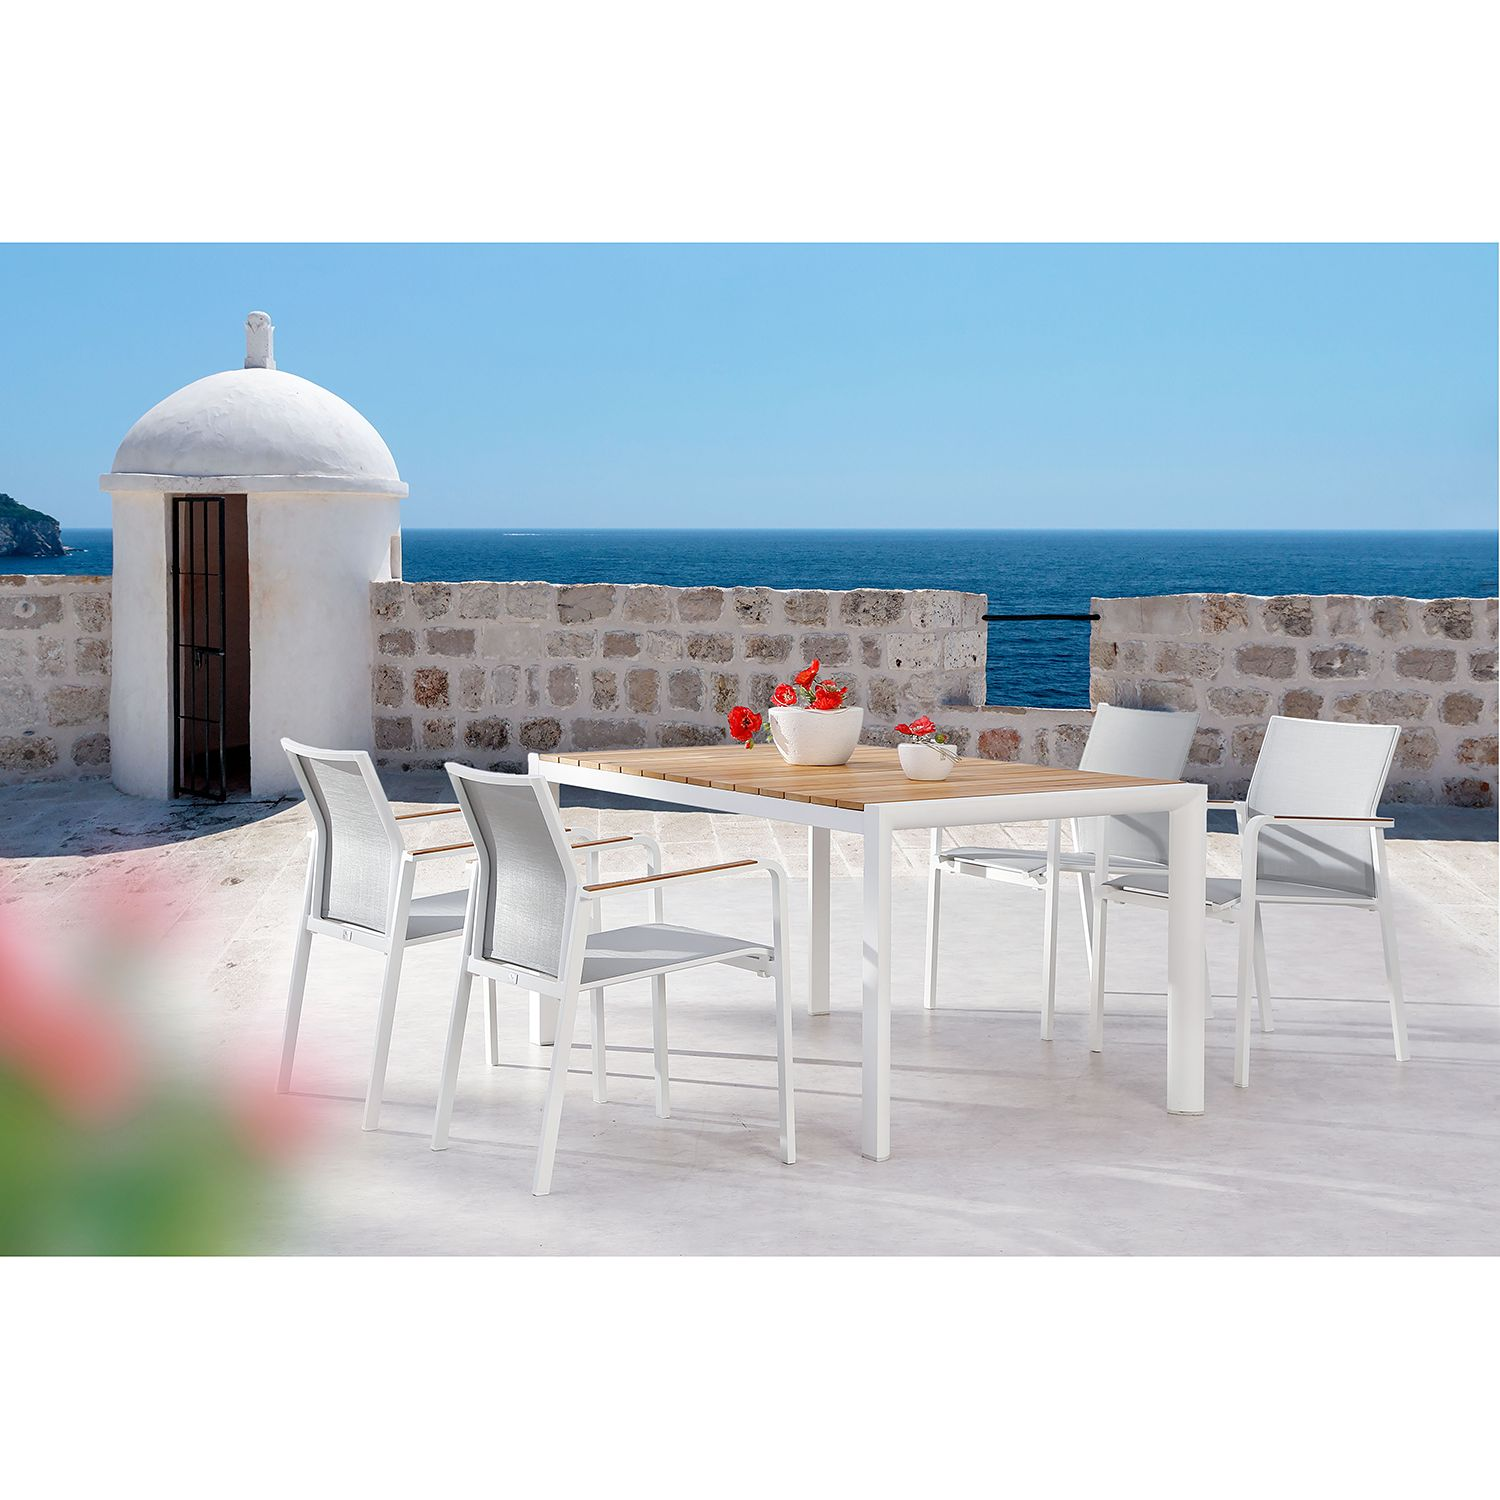 Table de jardin Paros